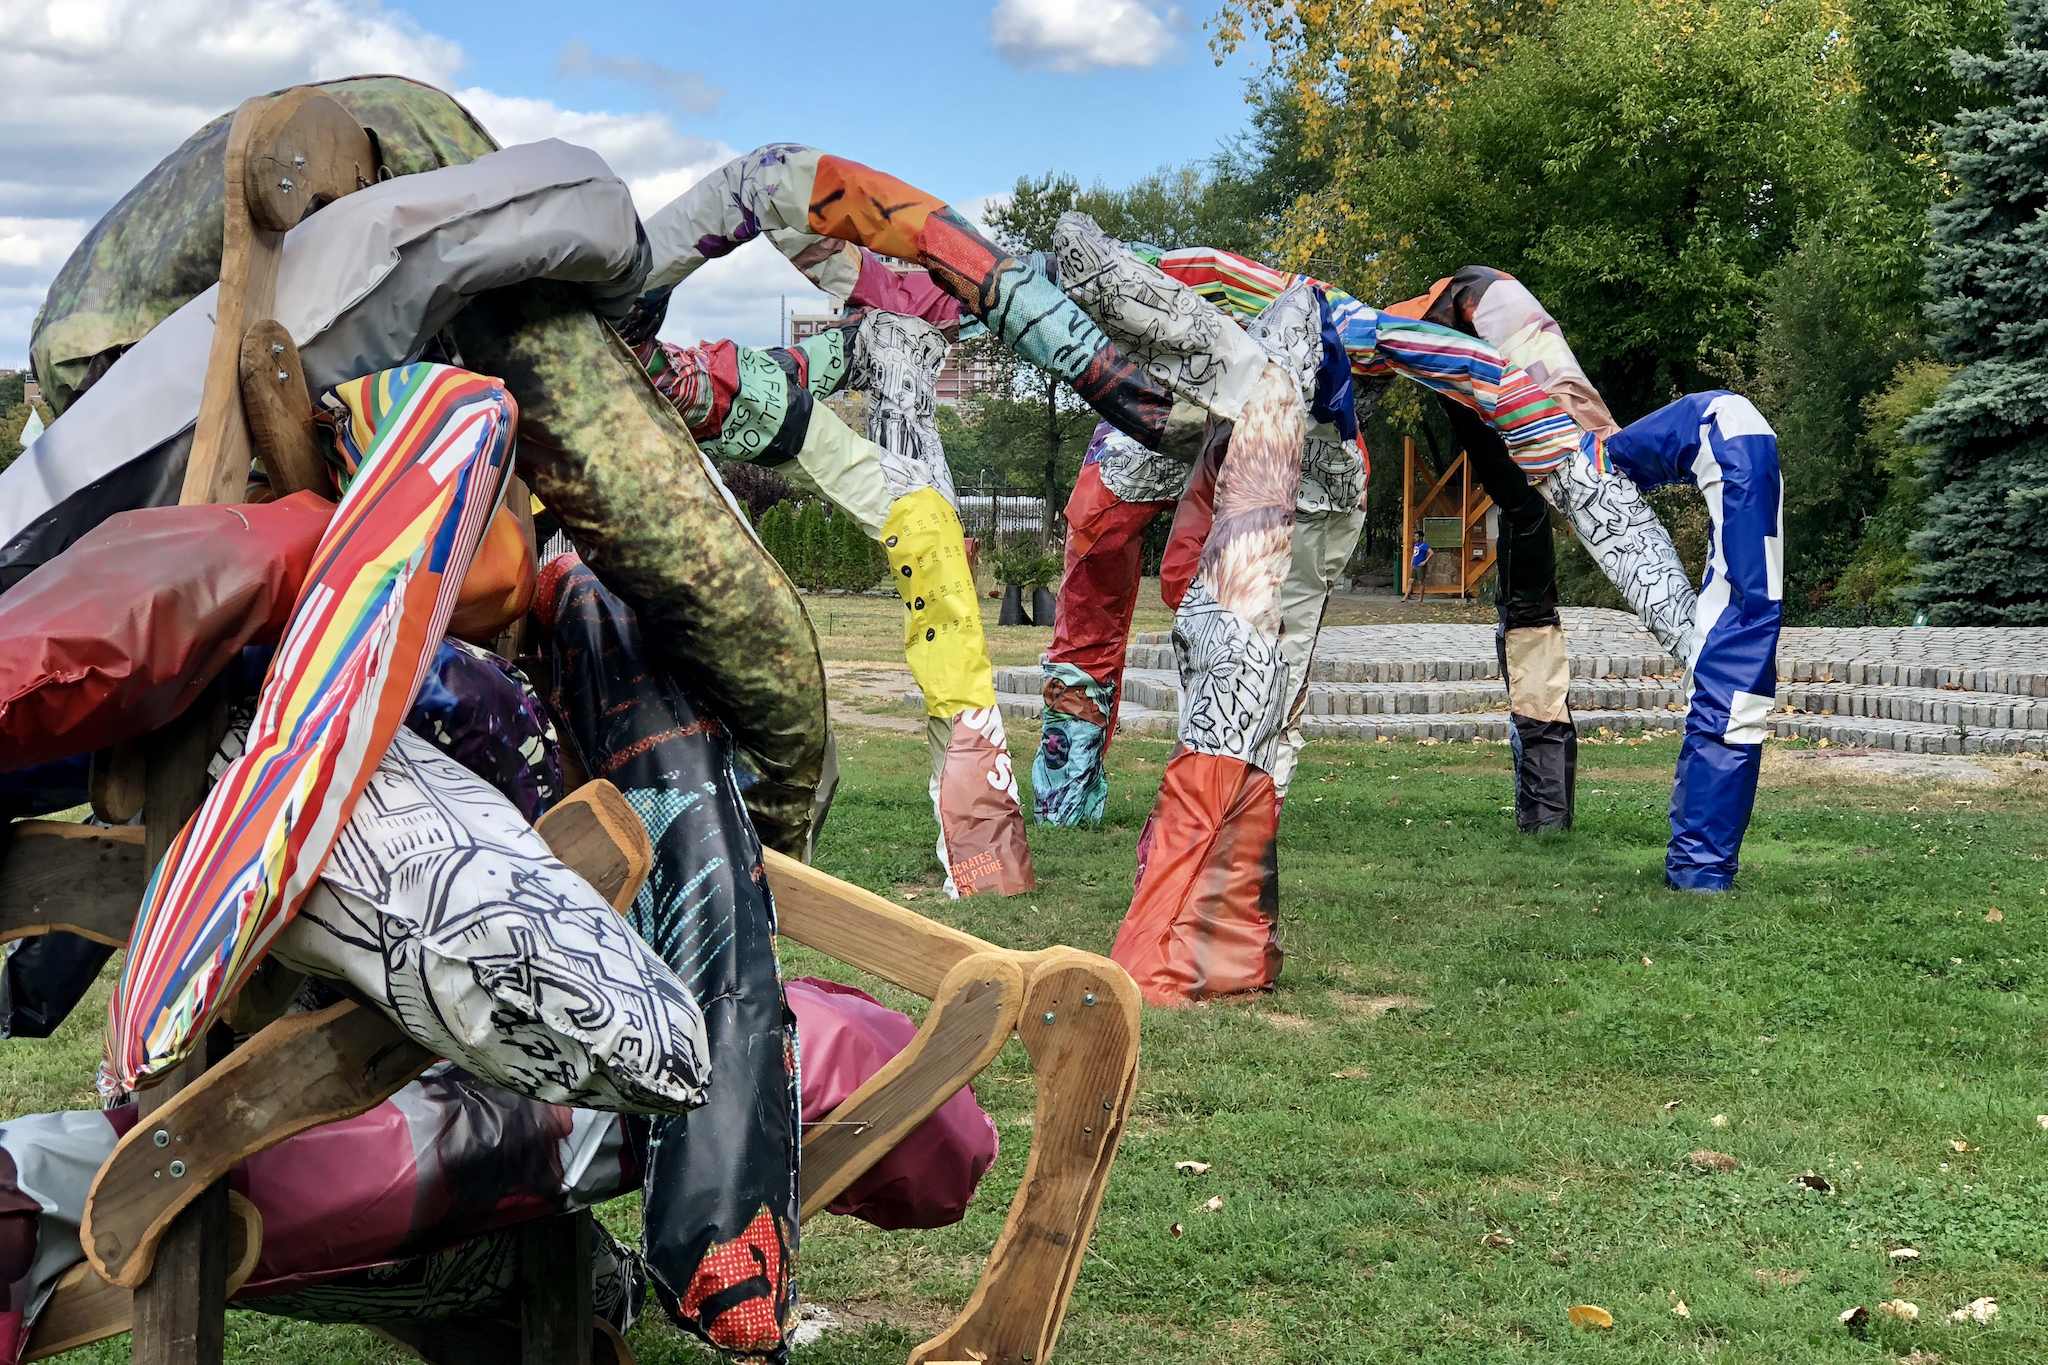 Check out a new set of incredible statues in Socrates Sculpture Park this weekend